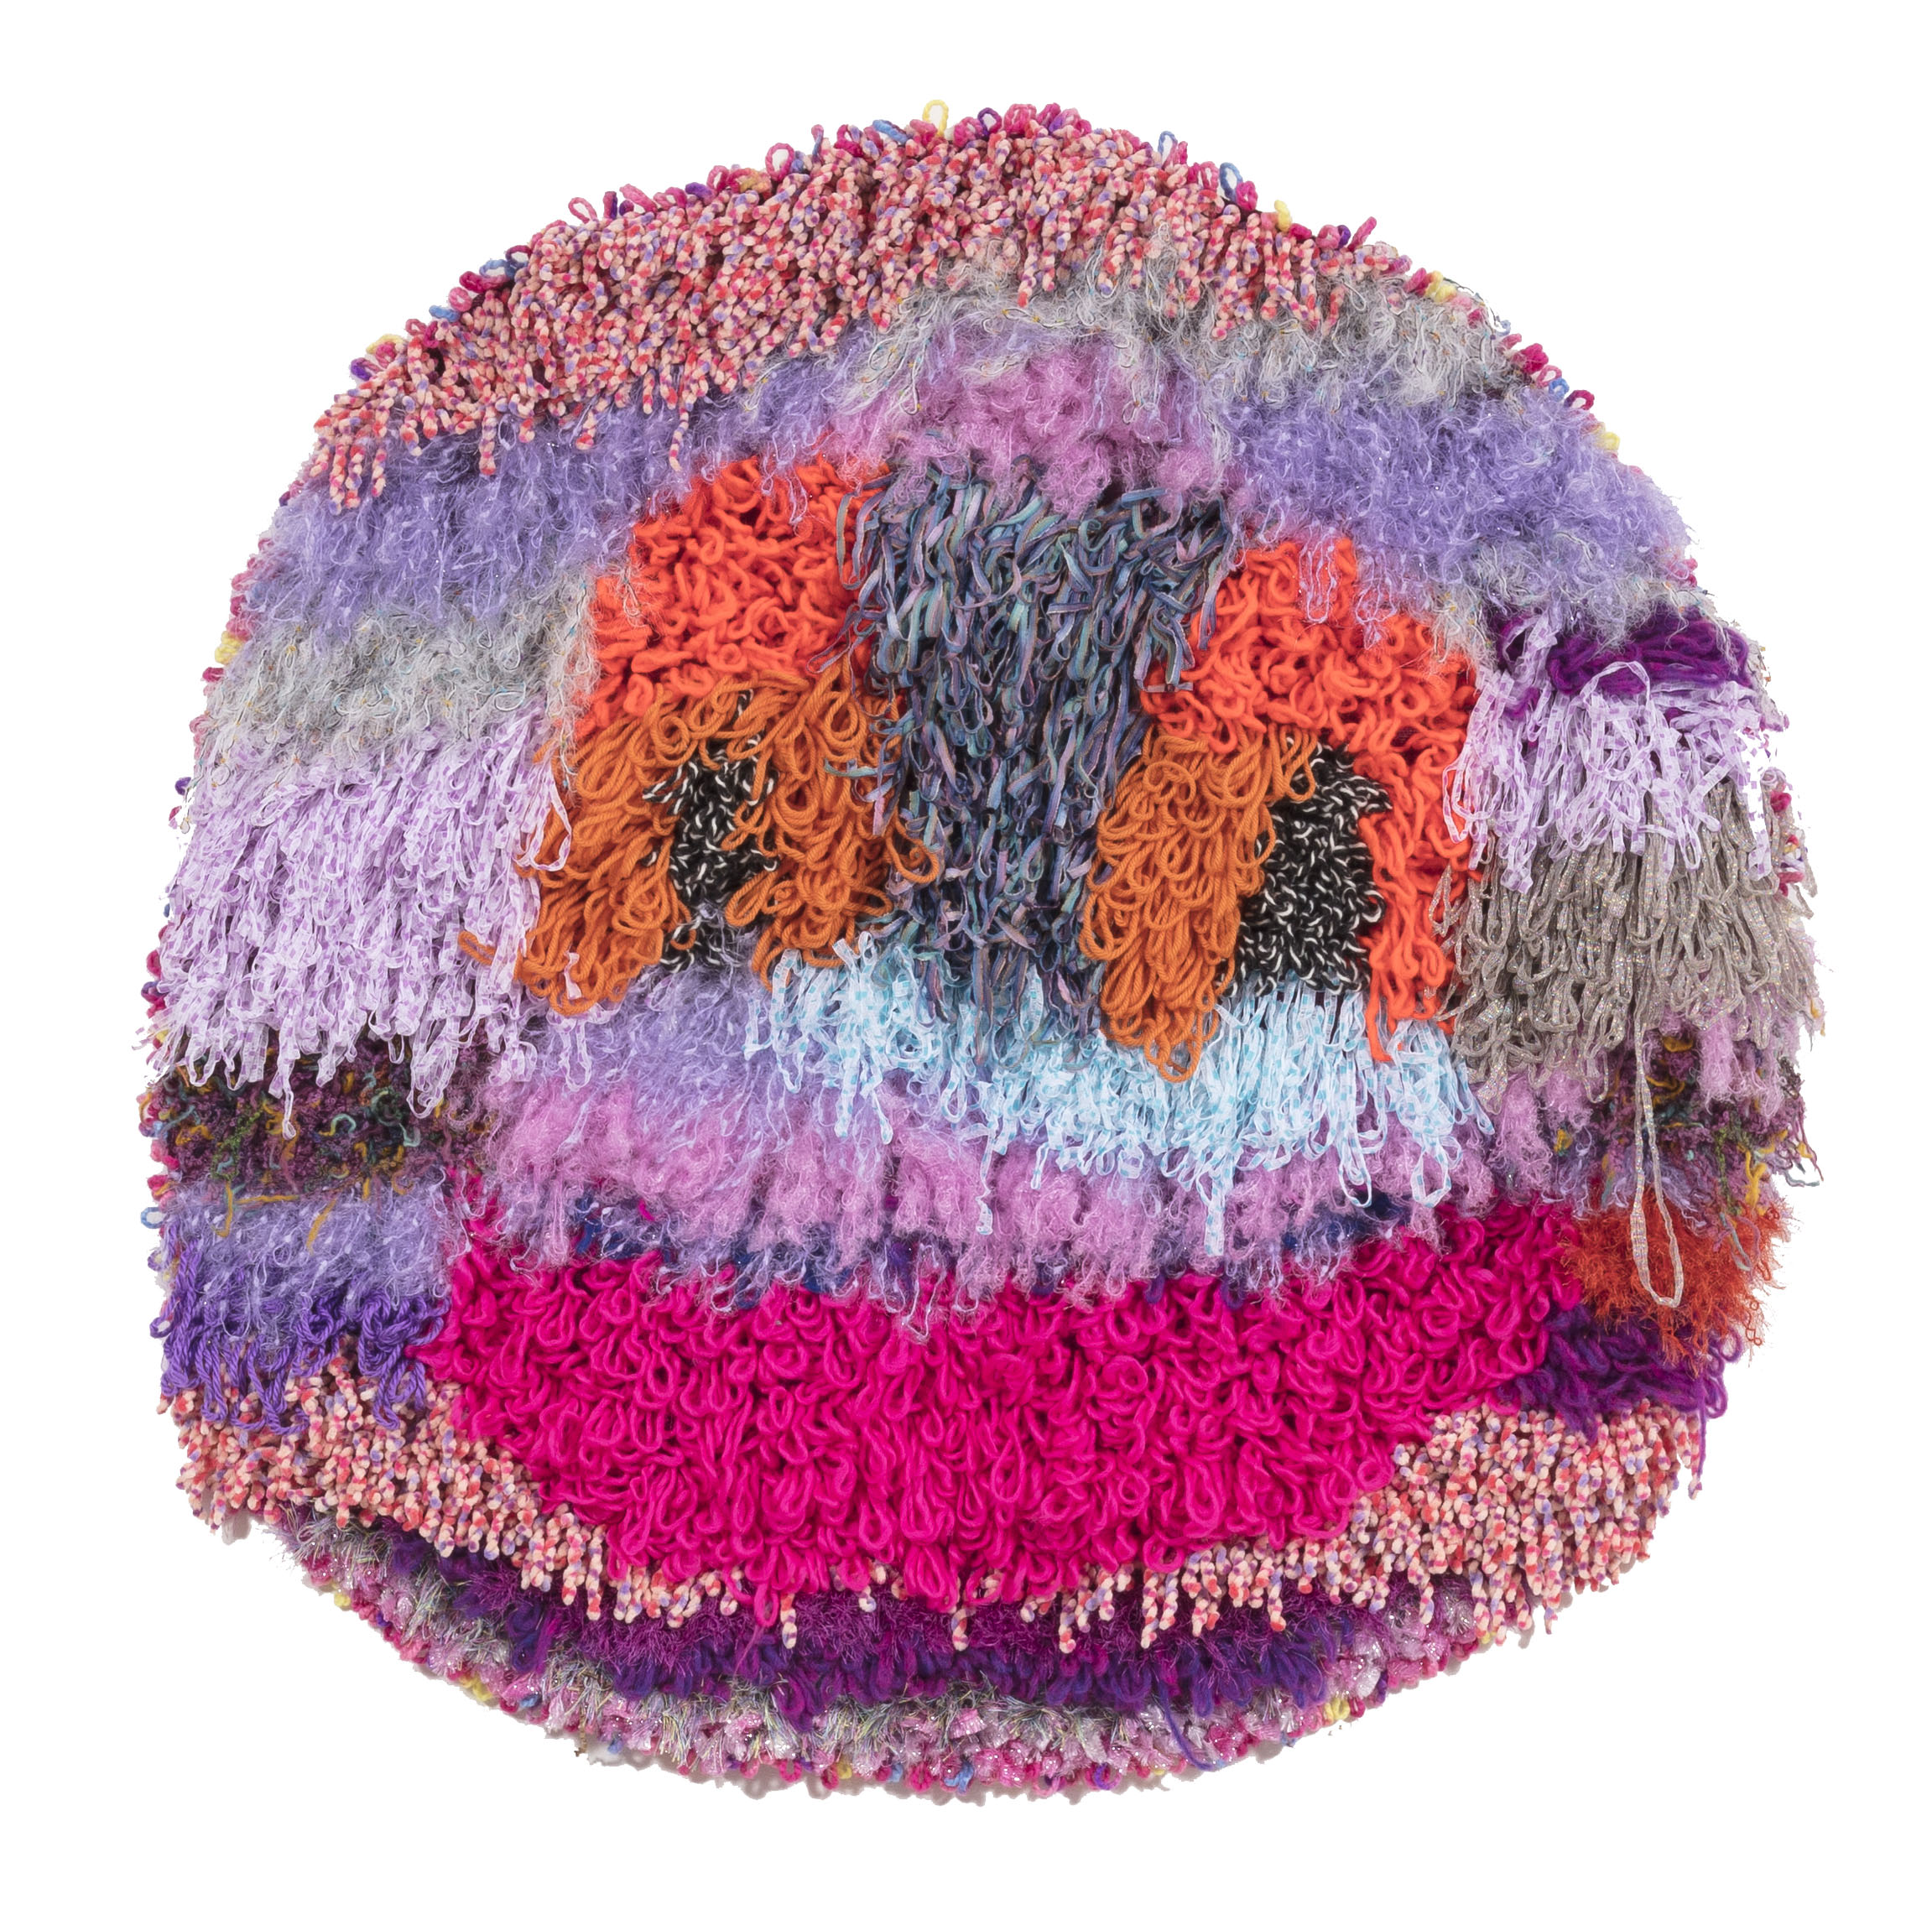 Hannah Epstein. <em>Planet Friendly</em>, 2018. Wool, acrylic, polyester, nylon and burlap, 46 x 47 inches (116.8 x 119.4 cm)